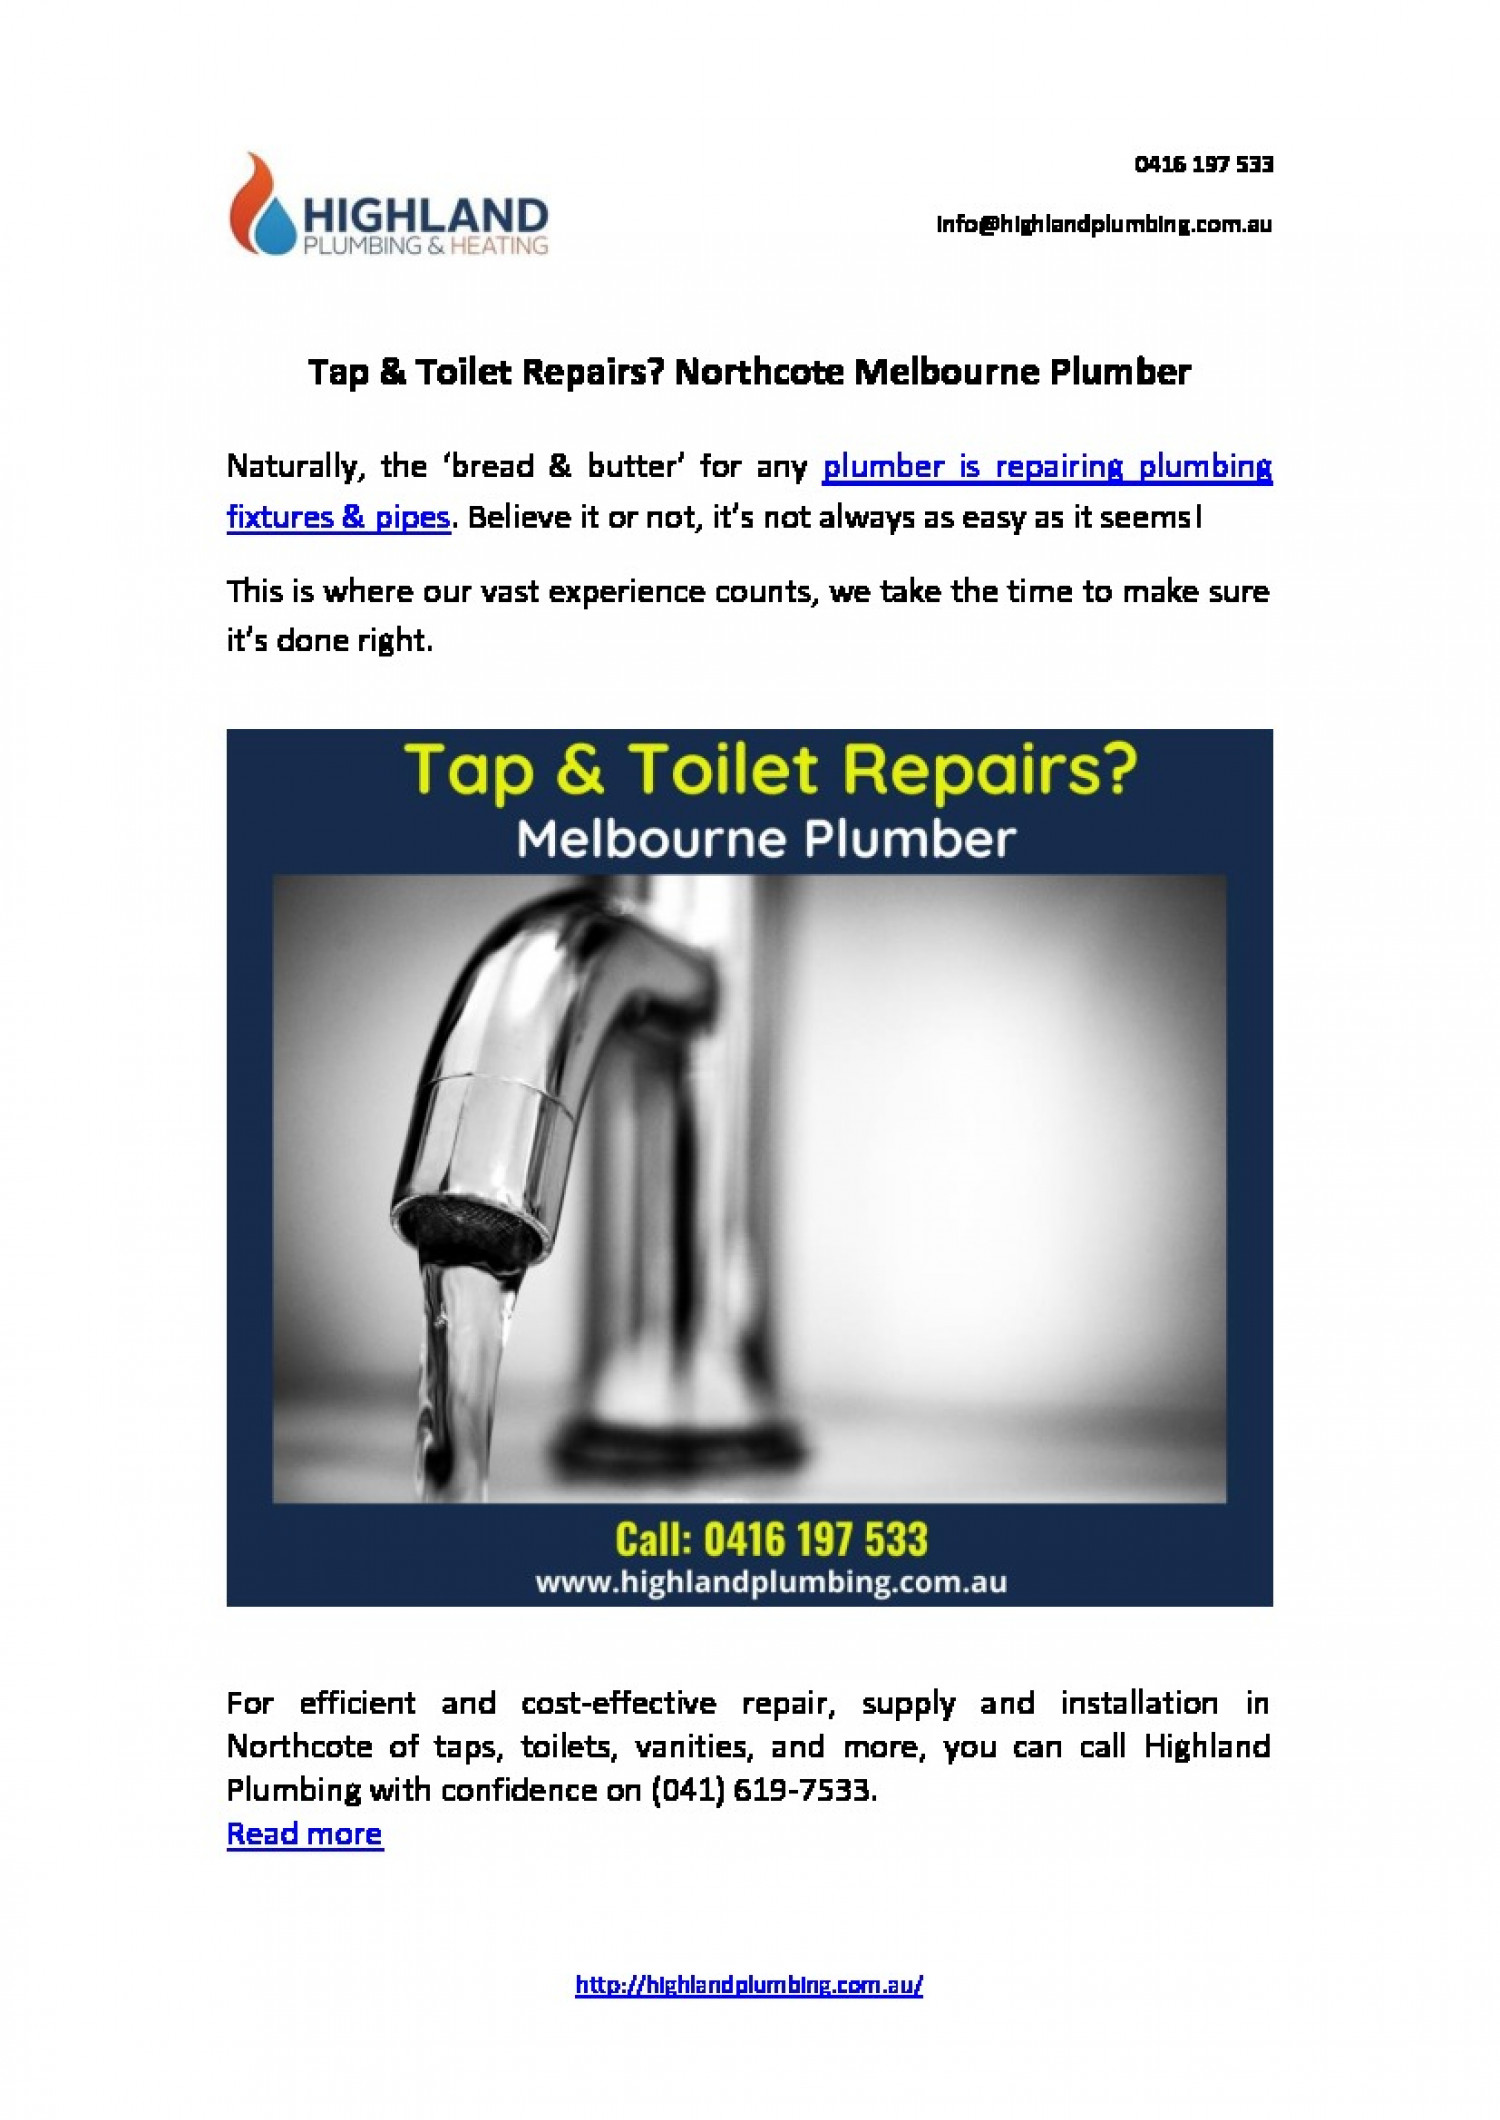 Tap & Toilet Repairs? Northcote Melbourne Plumber | Highland Plumbing Infographic